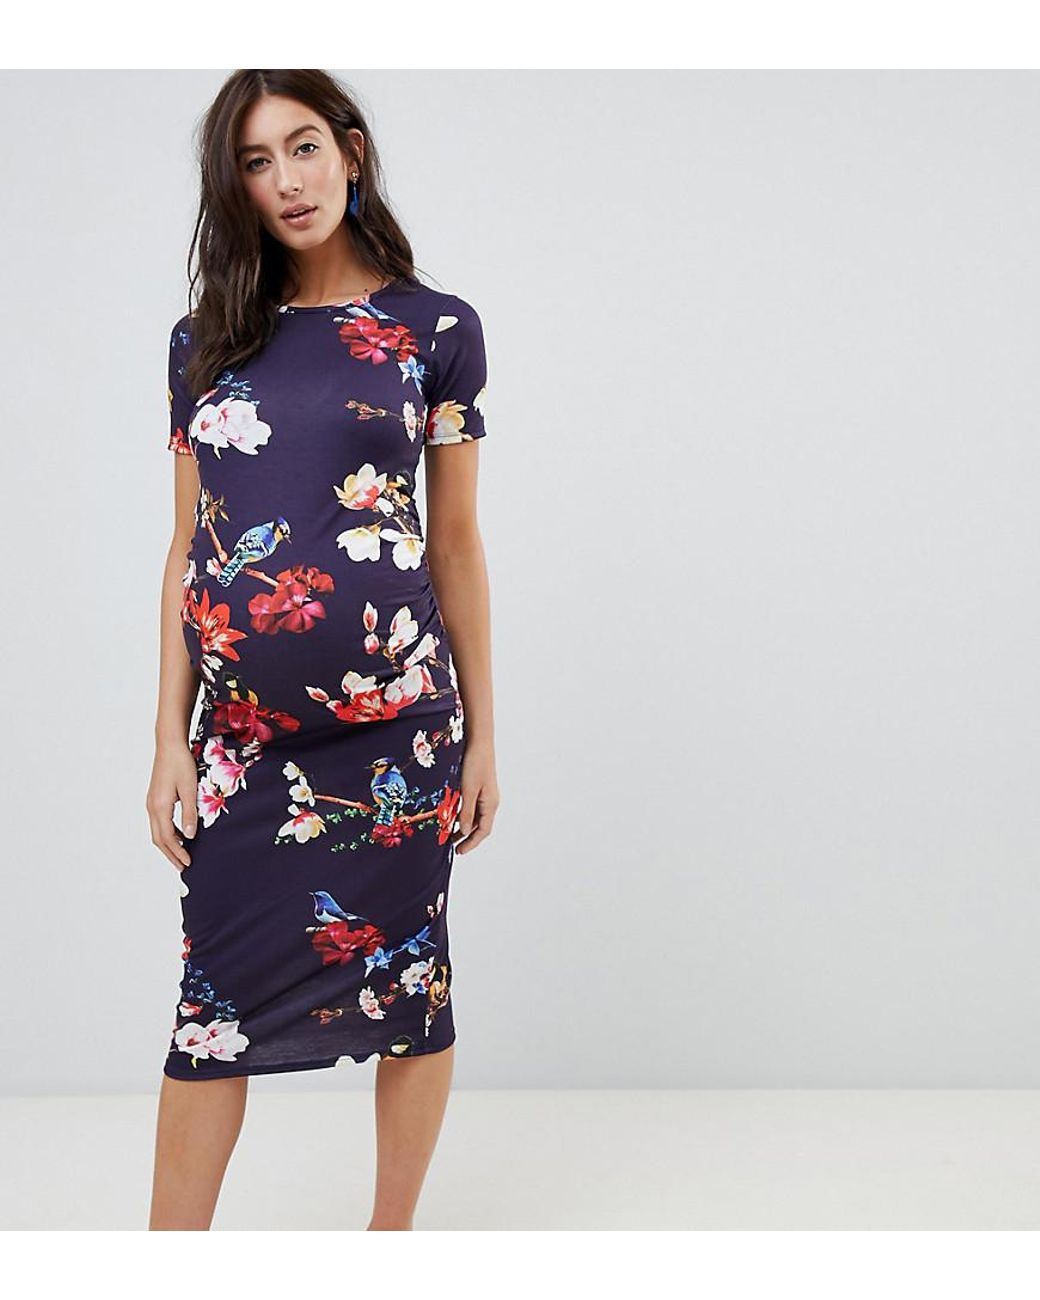 51fae102d78 Bluebelle Maternity Short Sleeve Bodycon Dress In Floral - Lyst